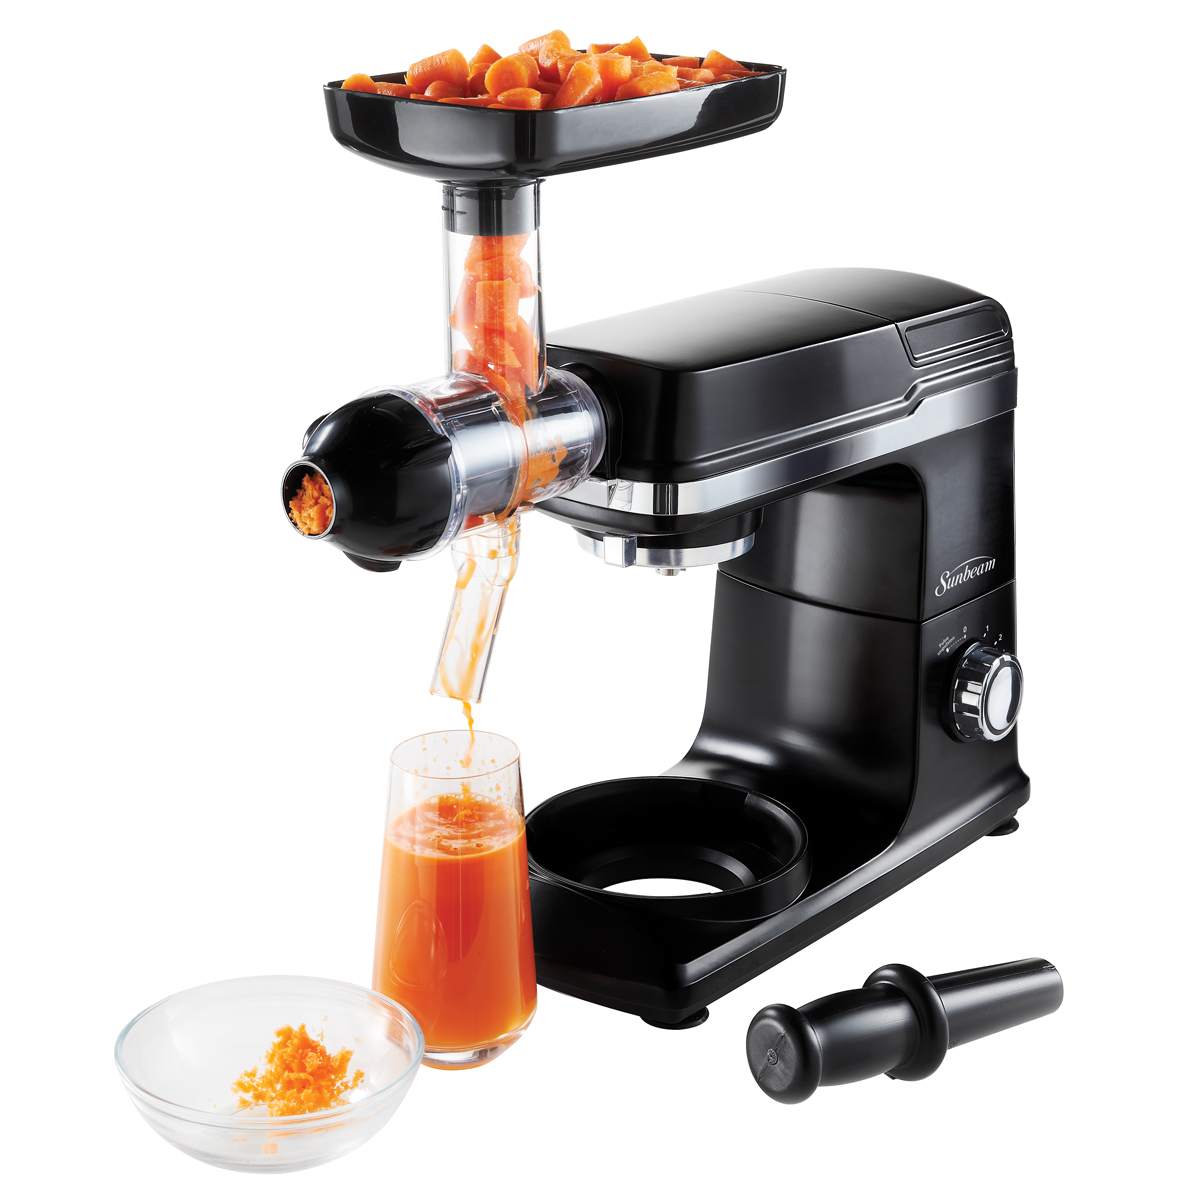 Slow Juicer Sunbeam : Sunbeam Mixmaster Planetary Stand Mixer Slow Juicer Attachment Sunbeam Canada